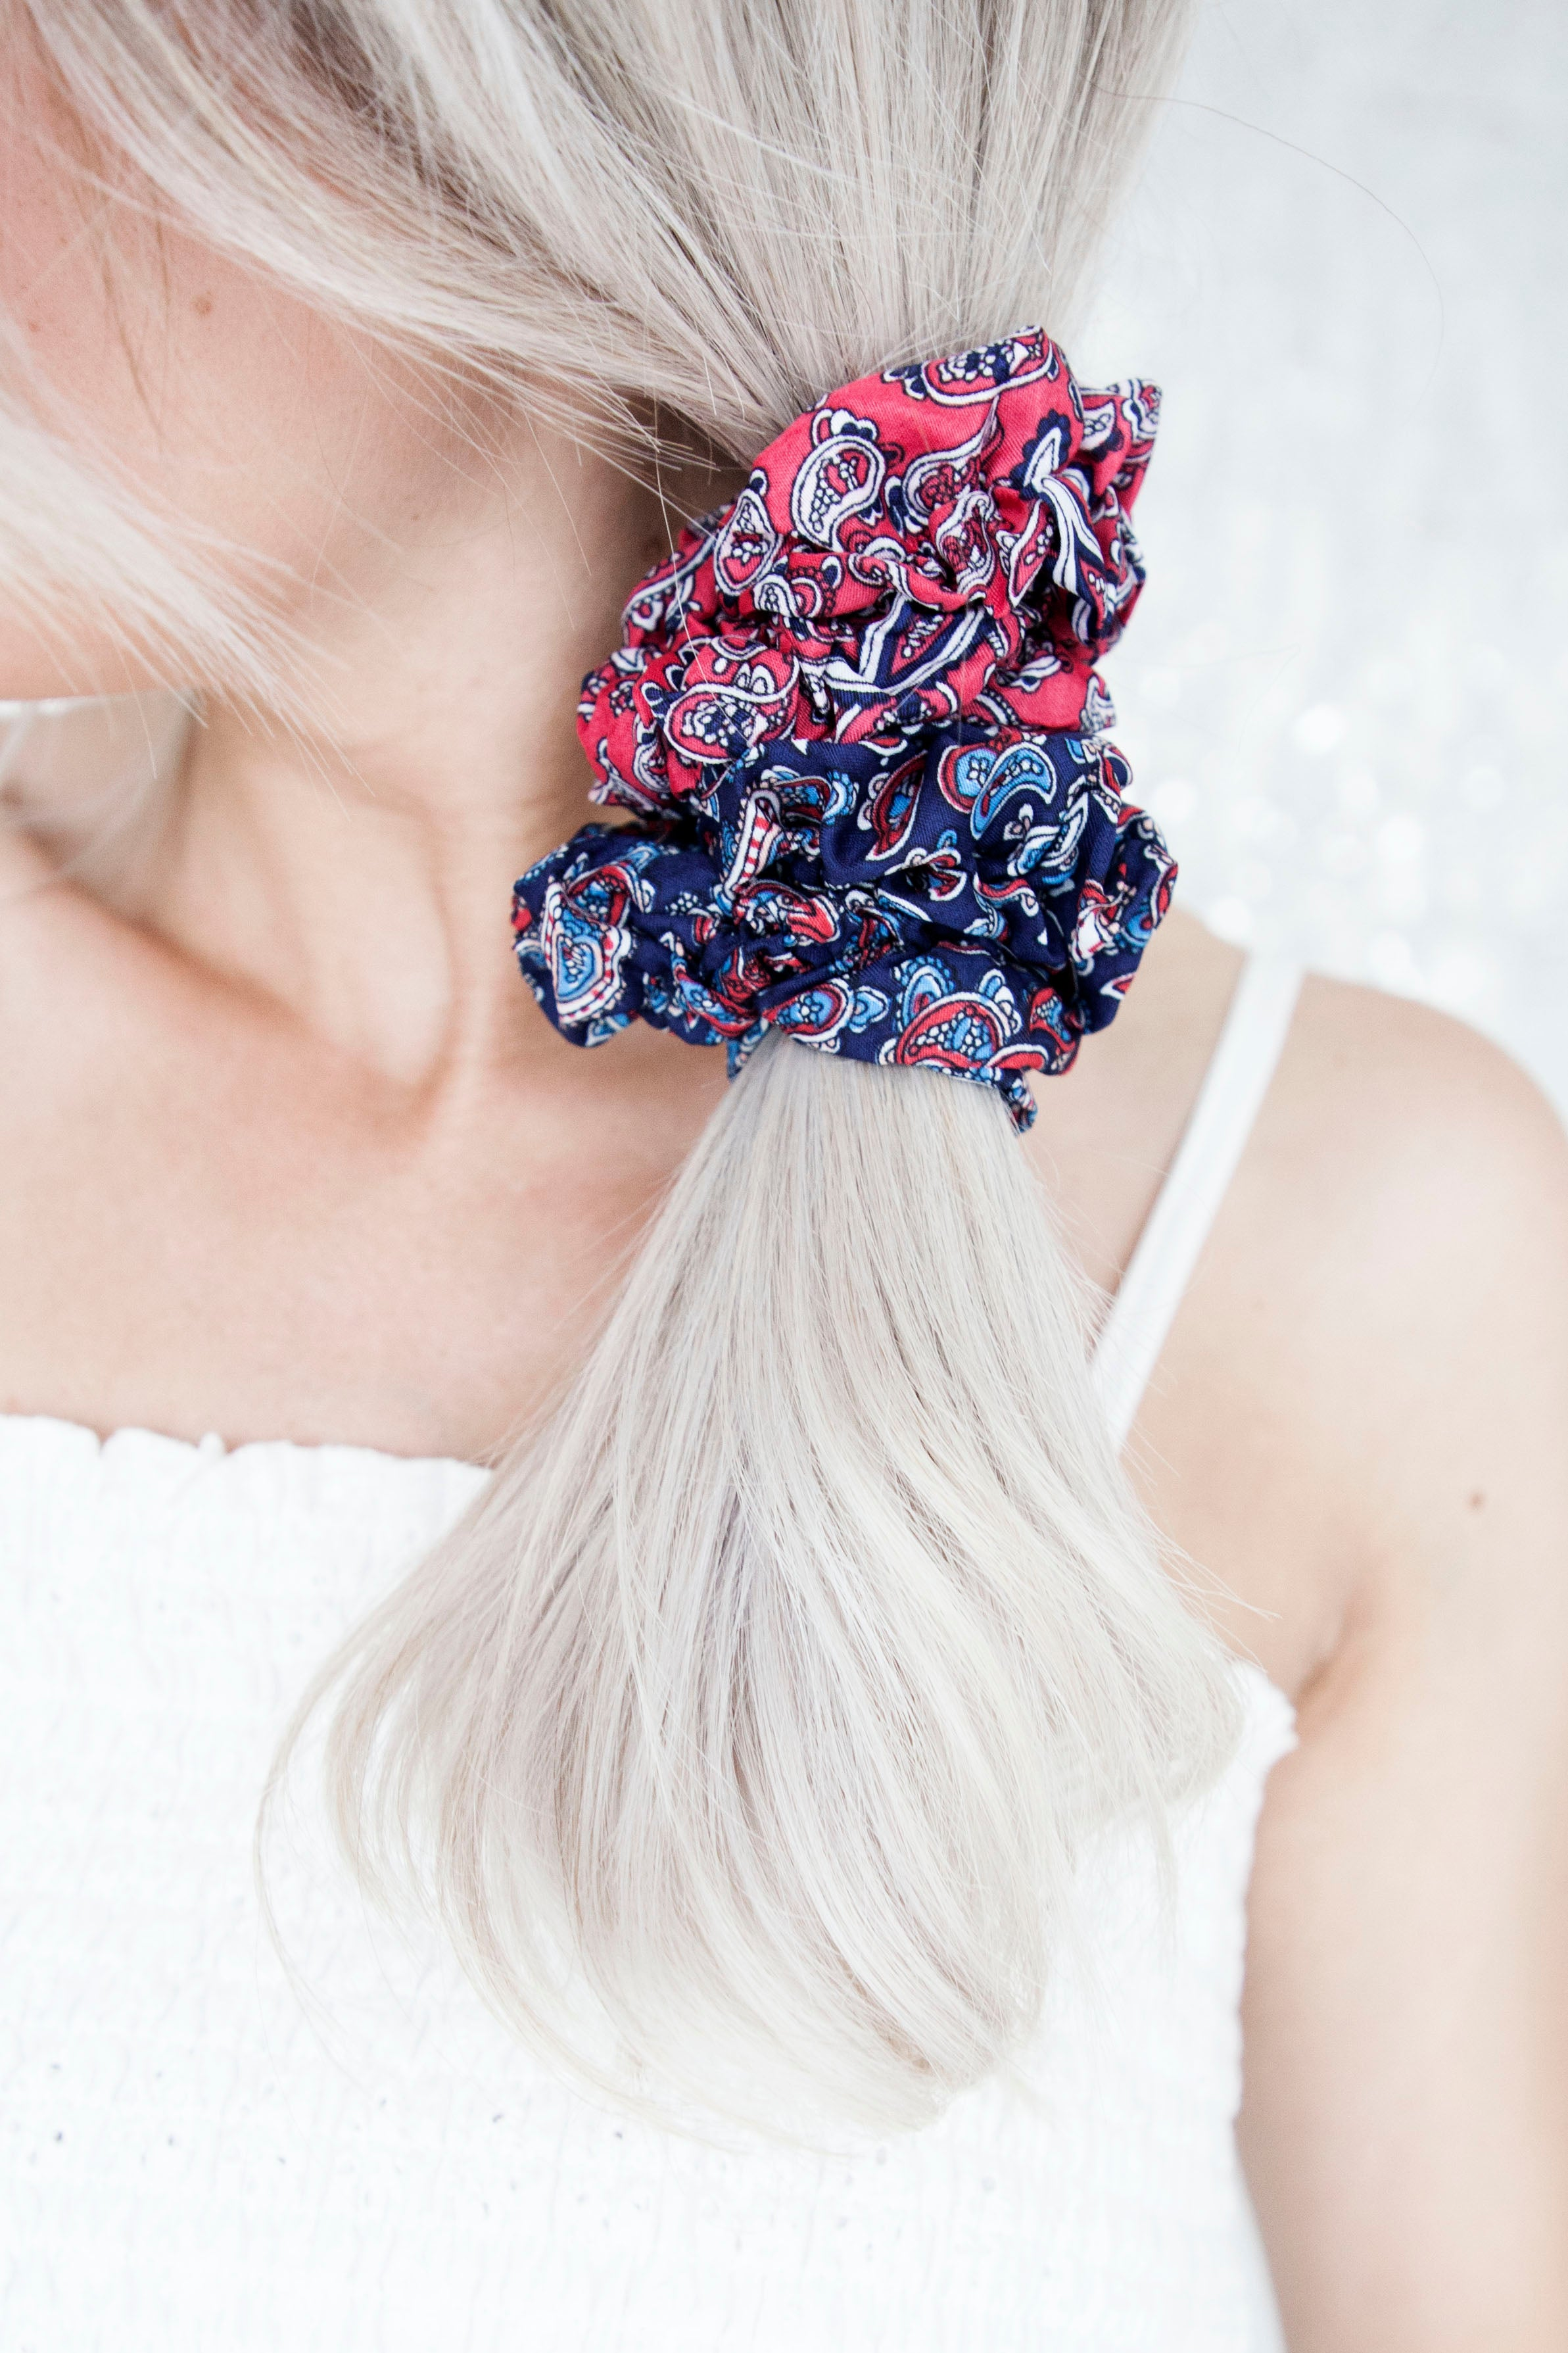 Whip That Hair Fuchsia & Dark Blue - Scrunchies Set/2